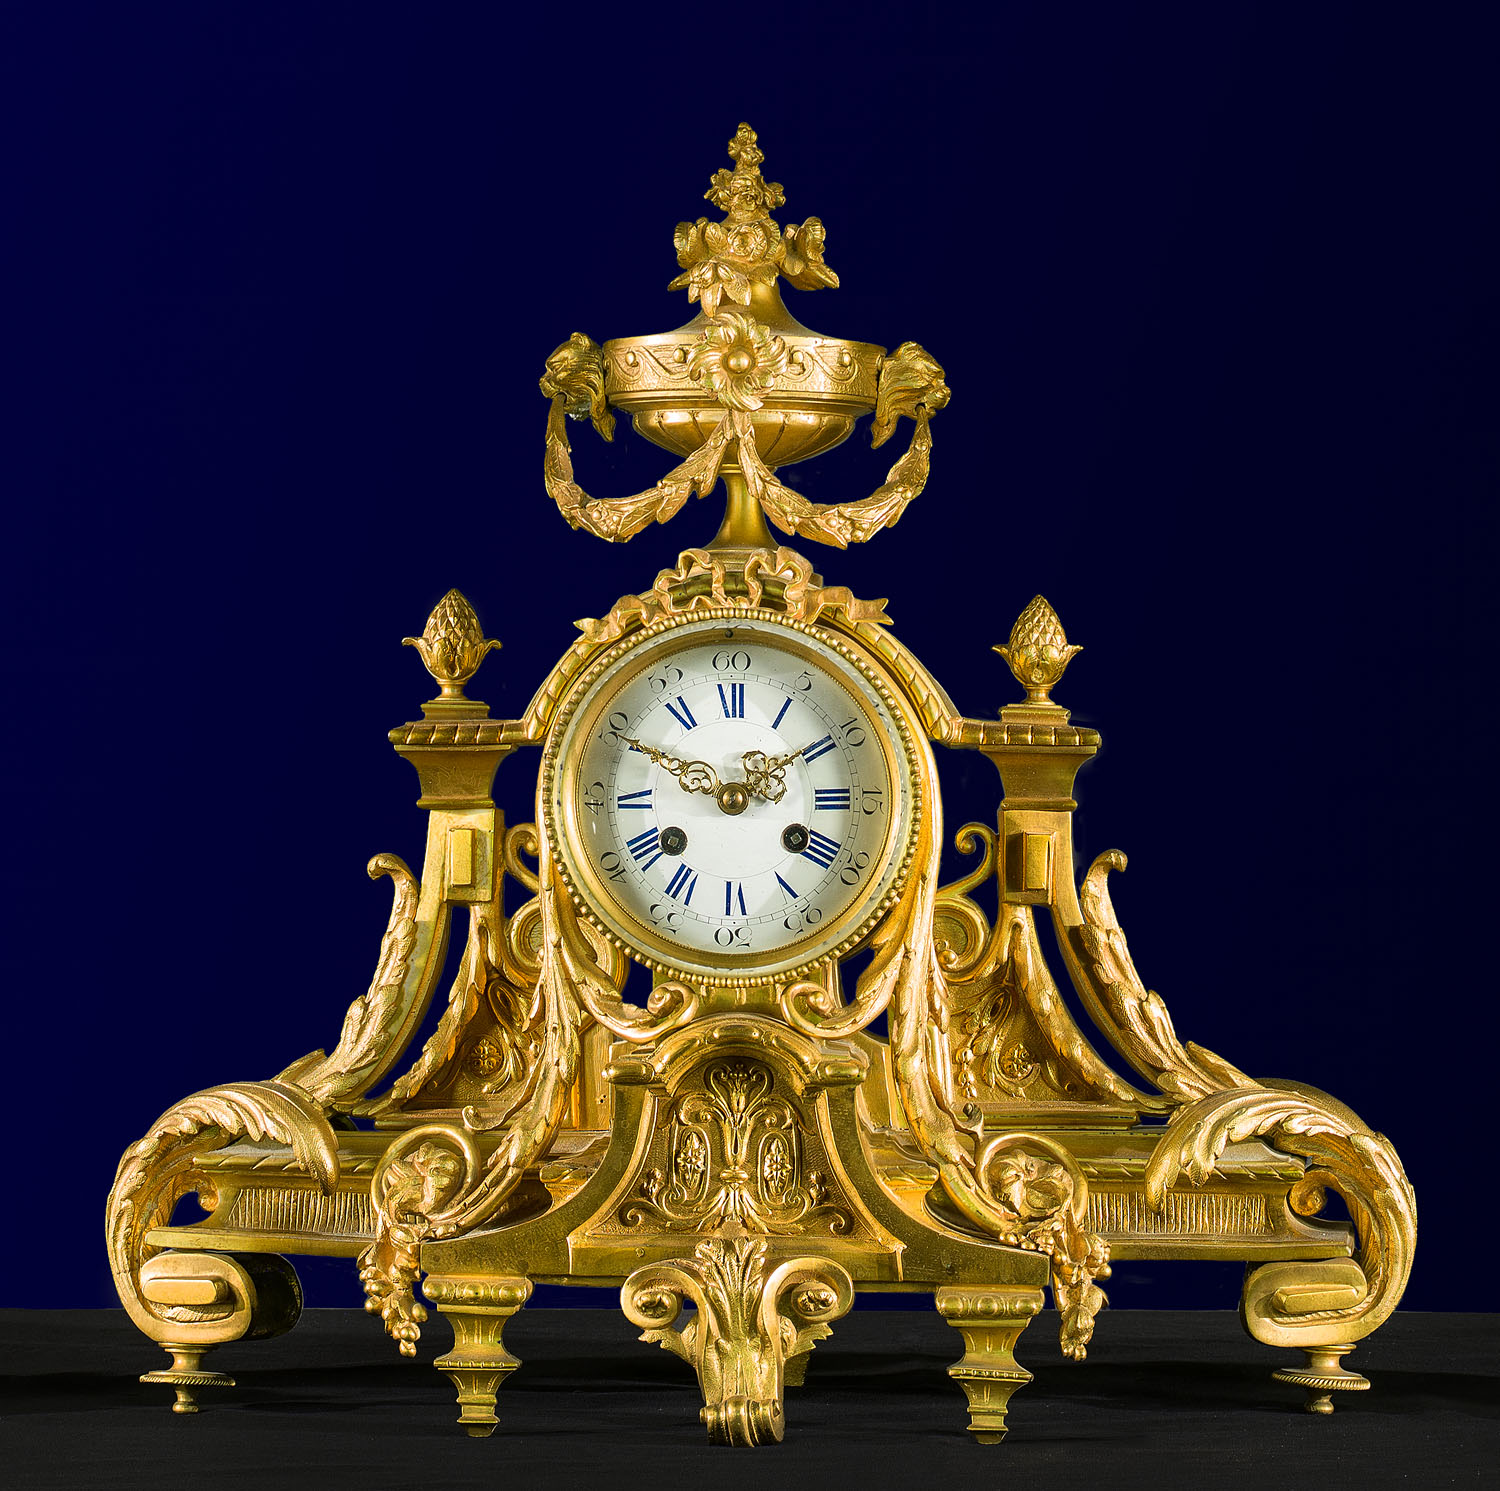 Ornate gilt bronze Rococo style clock garniture